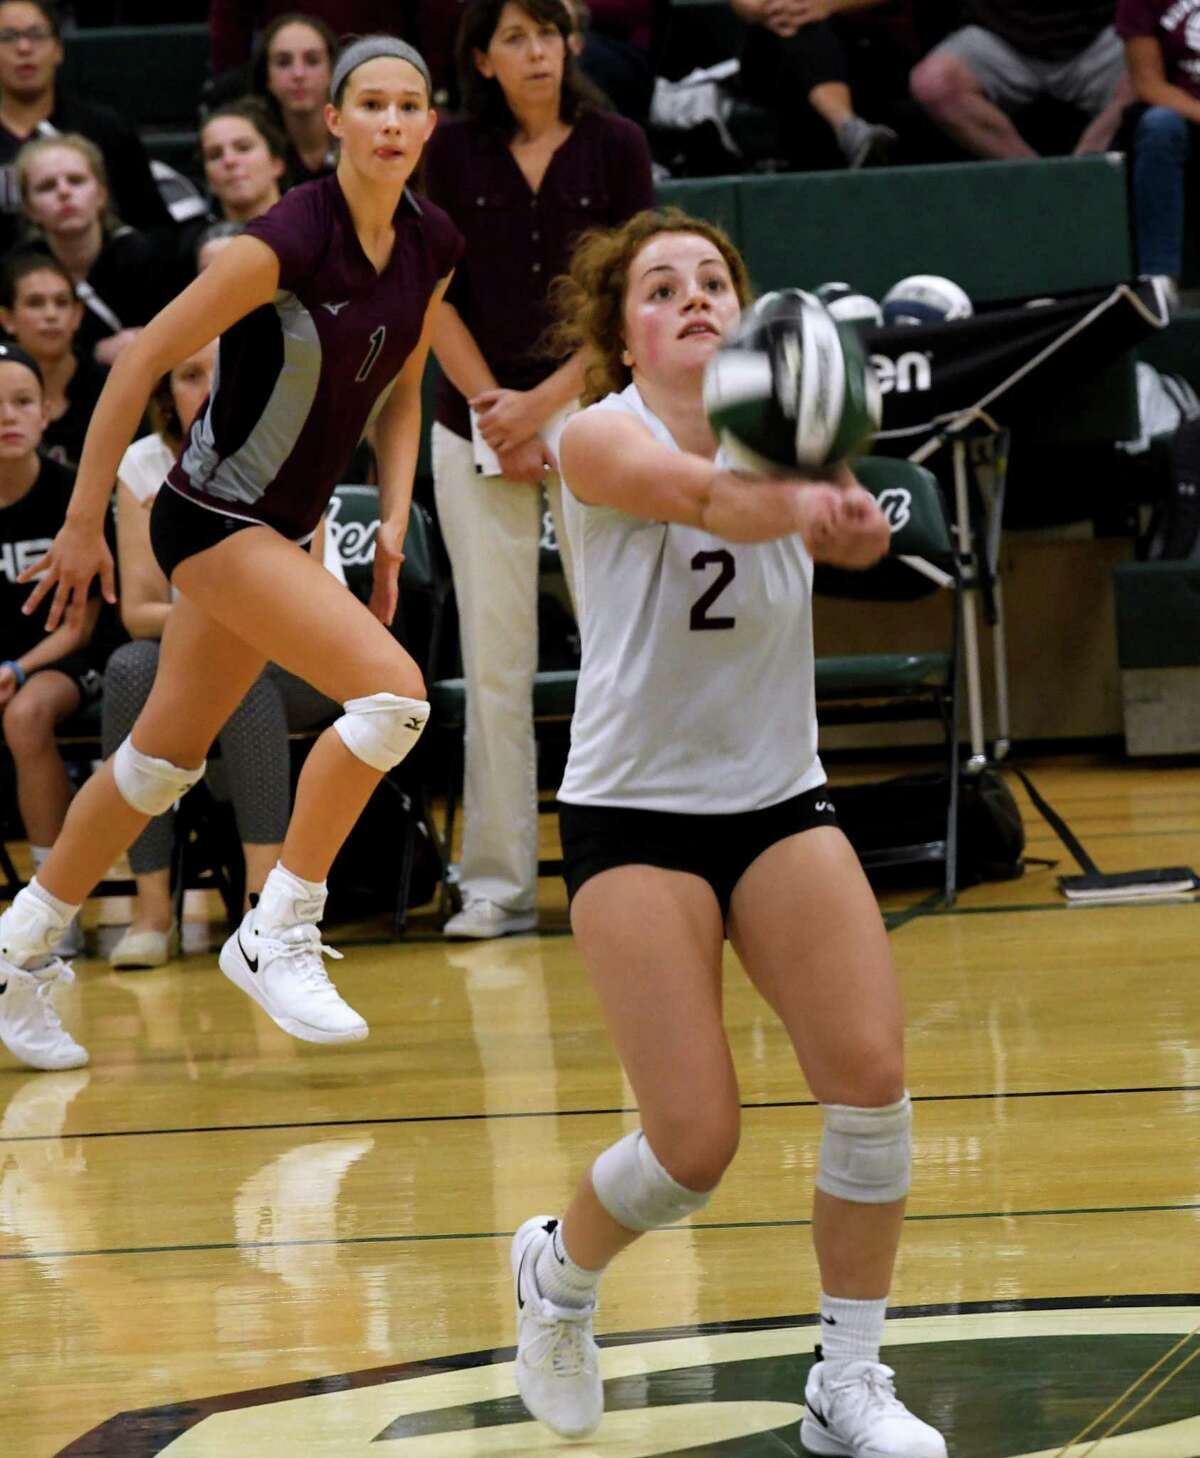 Burnt Hills' Sofia Pawlusik, #2, sets up the ball for Carlie Rzeszotarski, left, during a volleyball match against Shenendehowa on Thursday, Sept. 12, 2019 in Clifton Park, N.Y. (Lori Van Buren/Times Union)